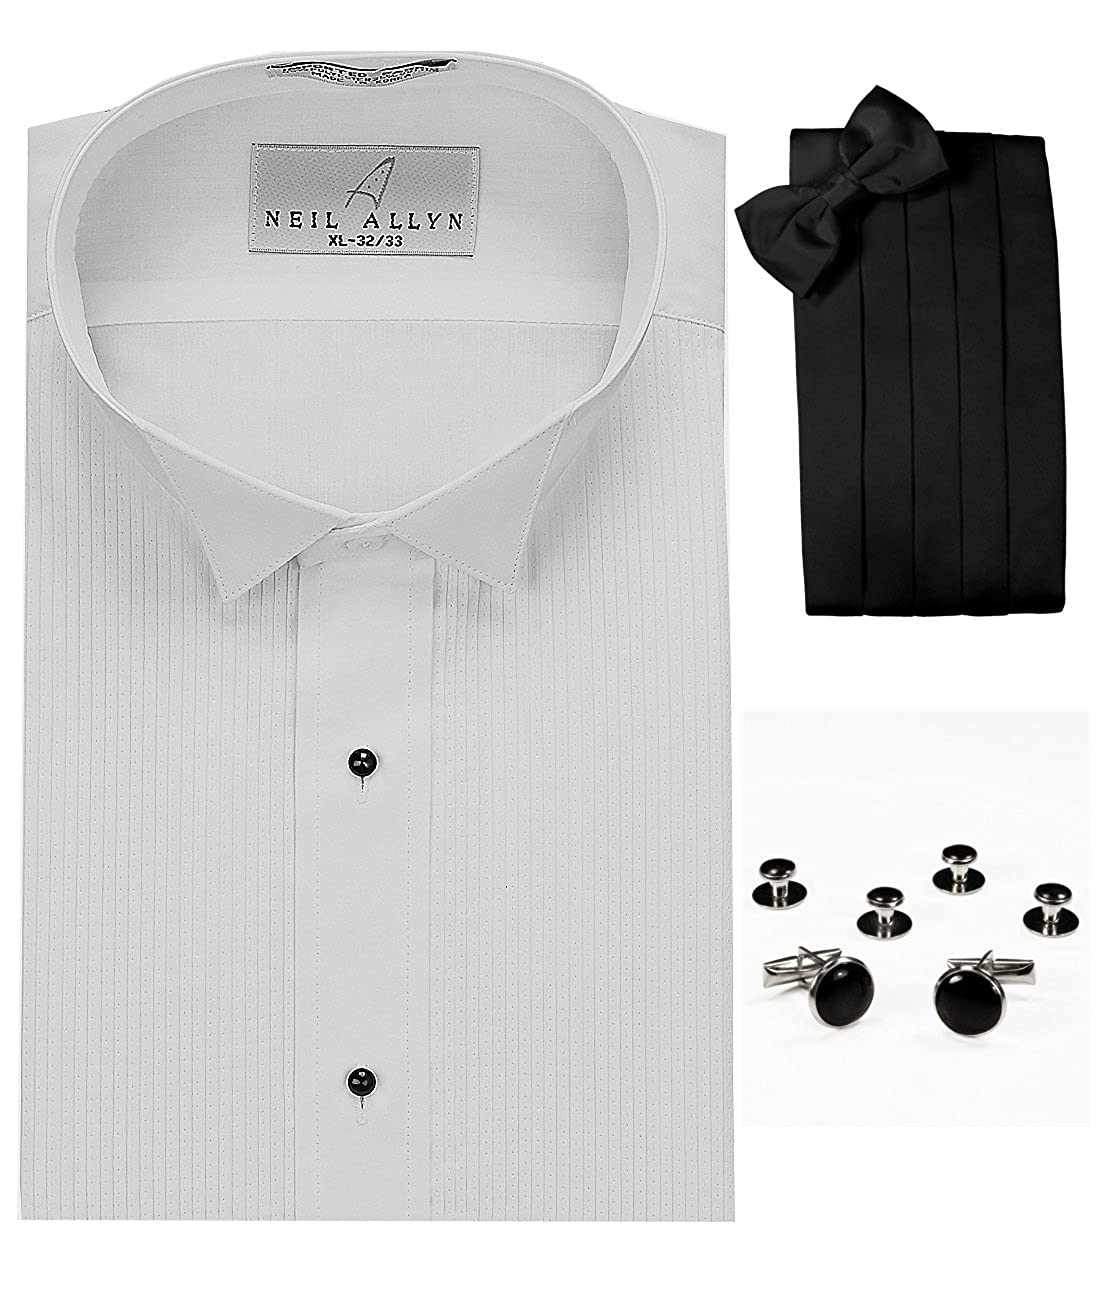 Neil Allyn Wing Collar Tuxedo Shirt, Cummerbund, Bow-Tie, Cuff Links & Studs Set